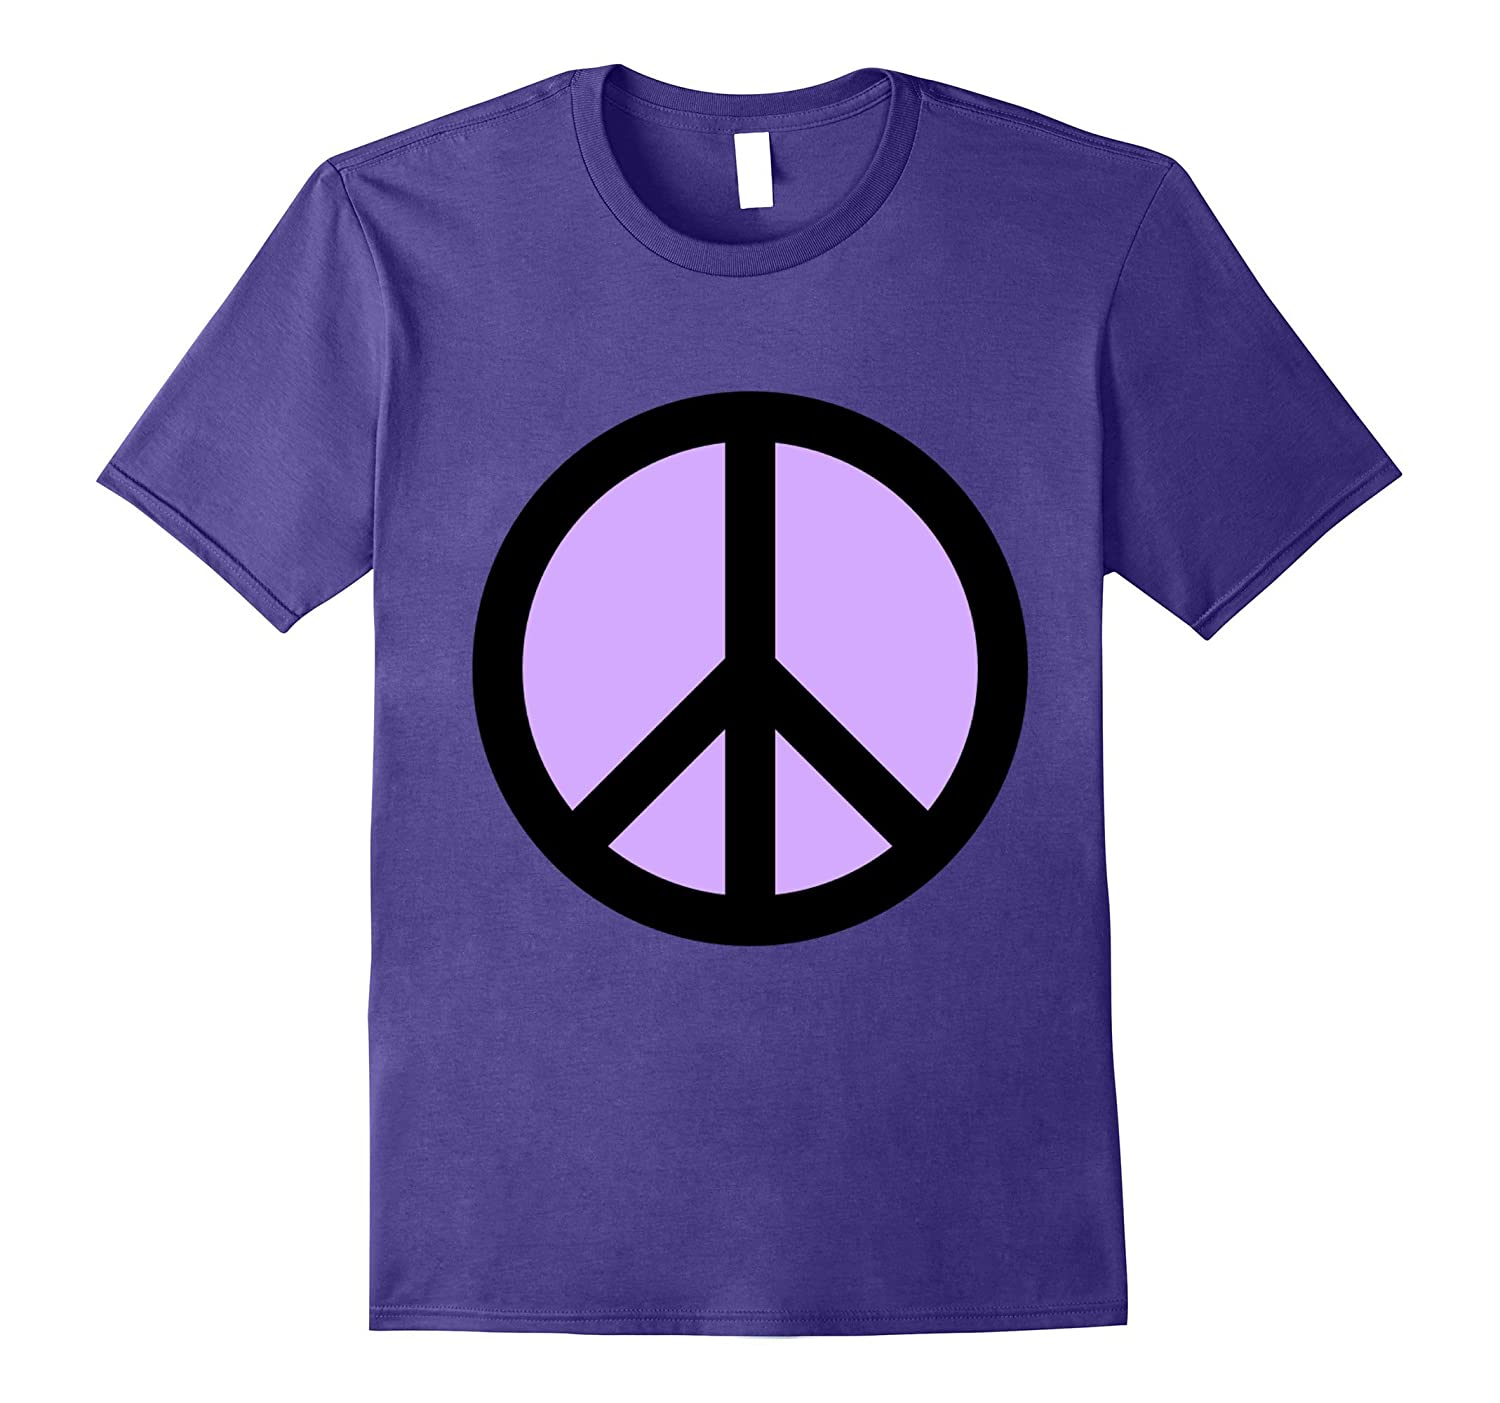 Big Retro Style Peace Sign t-shirt Vintage Hippie Peace Vibe-RT